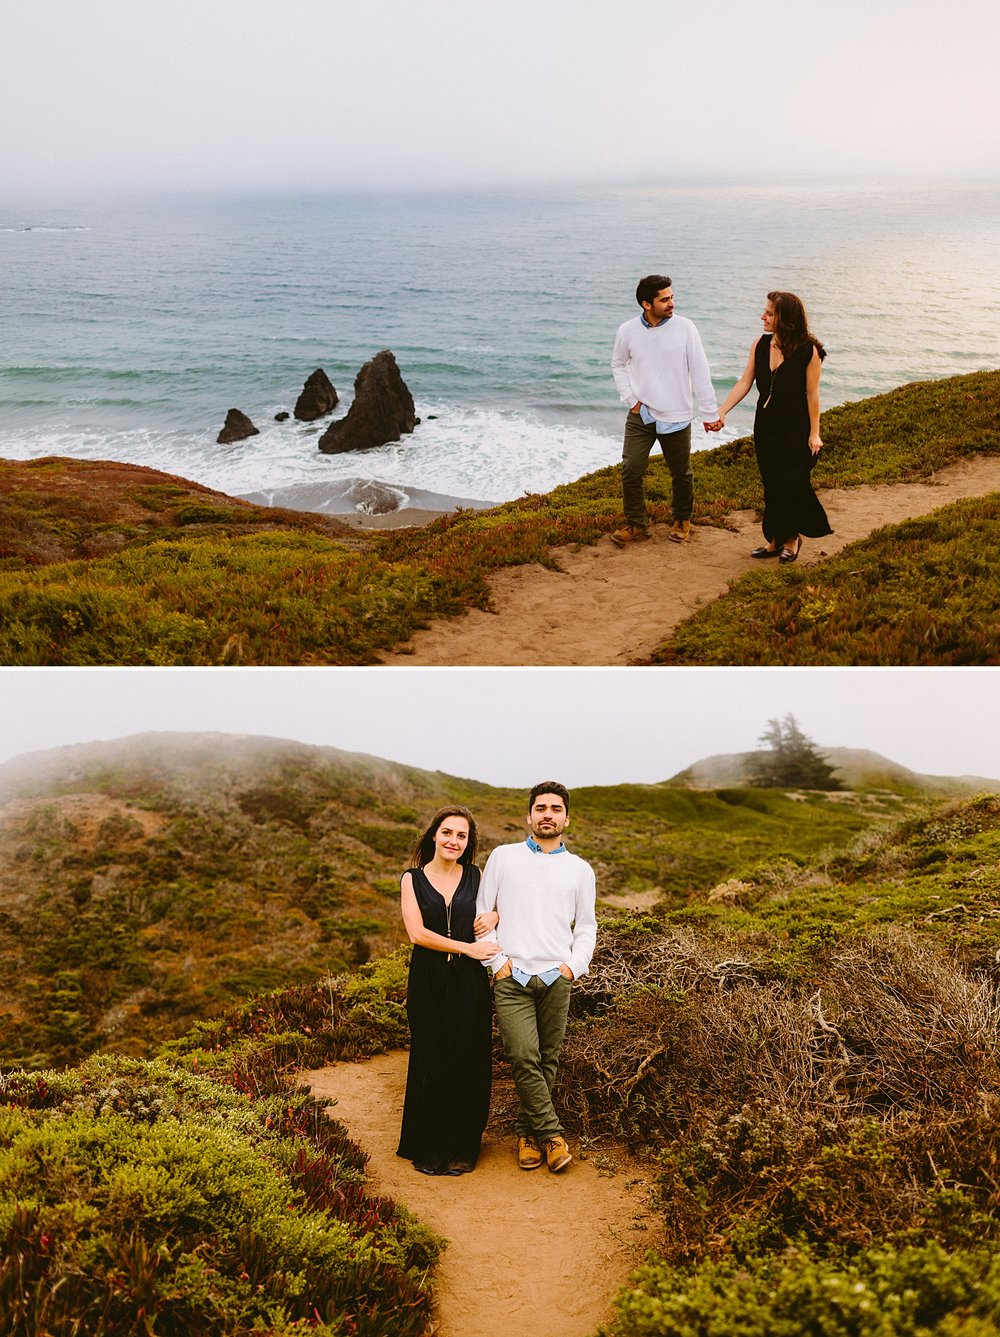 victoria heer | victoria heer photography | san francisco wedding photographer | rodeo cove engagement